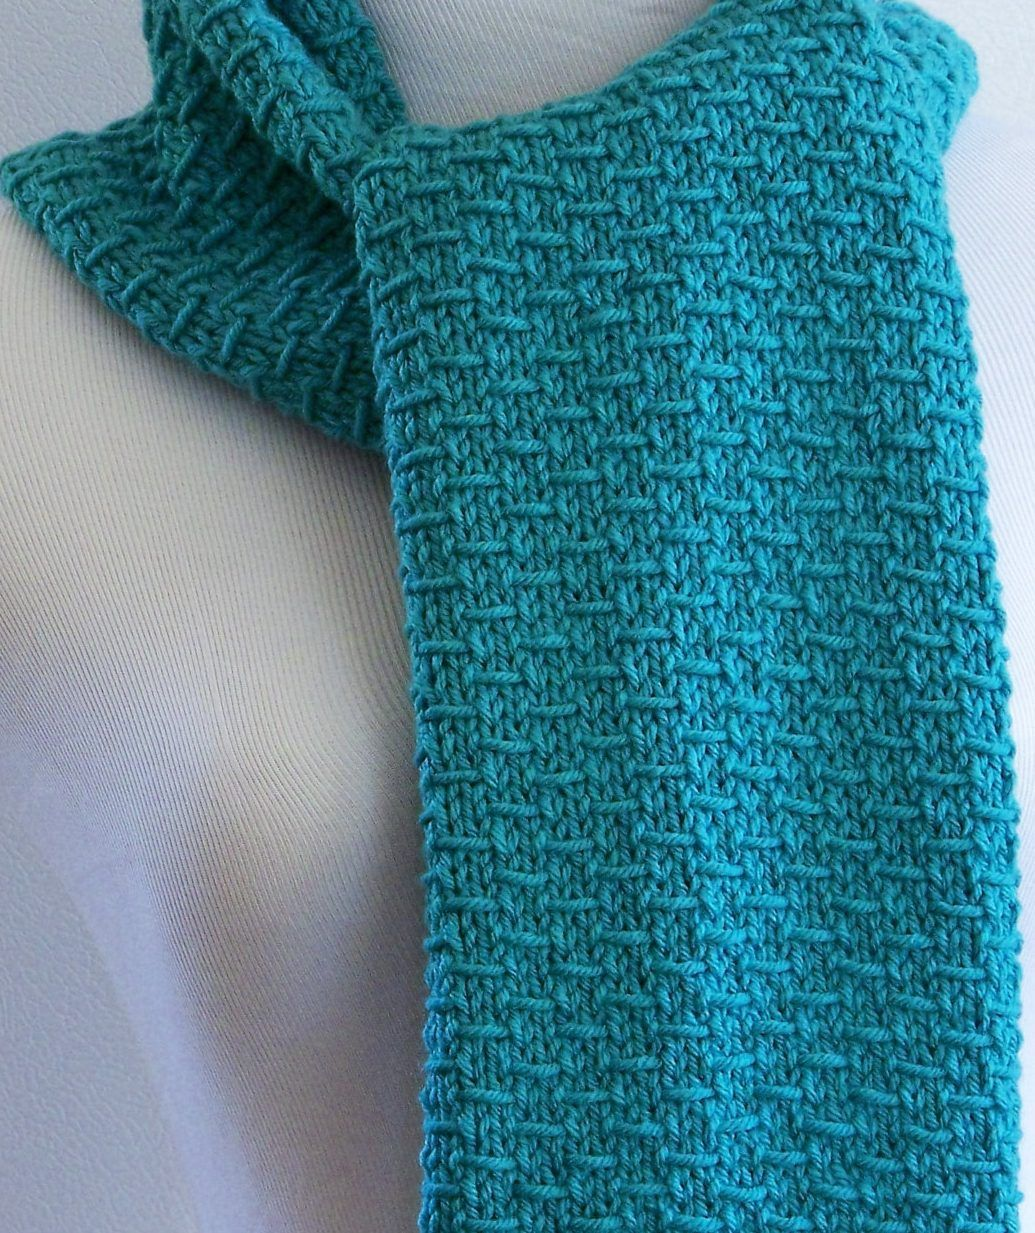 Types Of Knitting Stitches For Scarves : Easy Scarf Knitting Patterns Stitches, Patterns and Pretty patterns